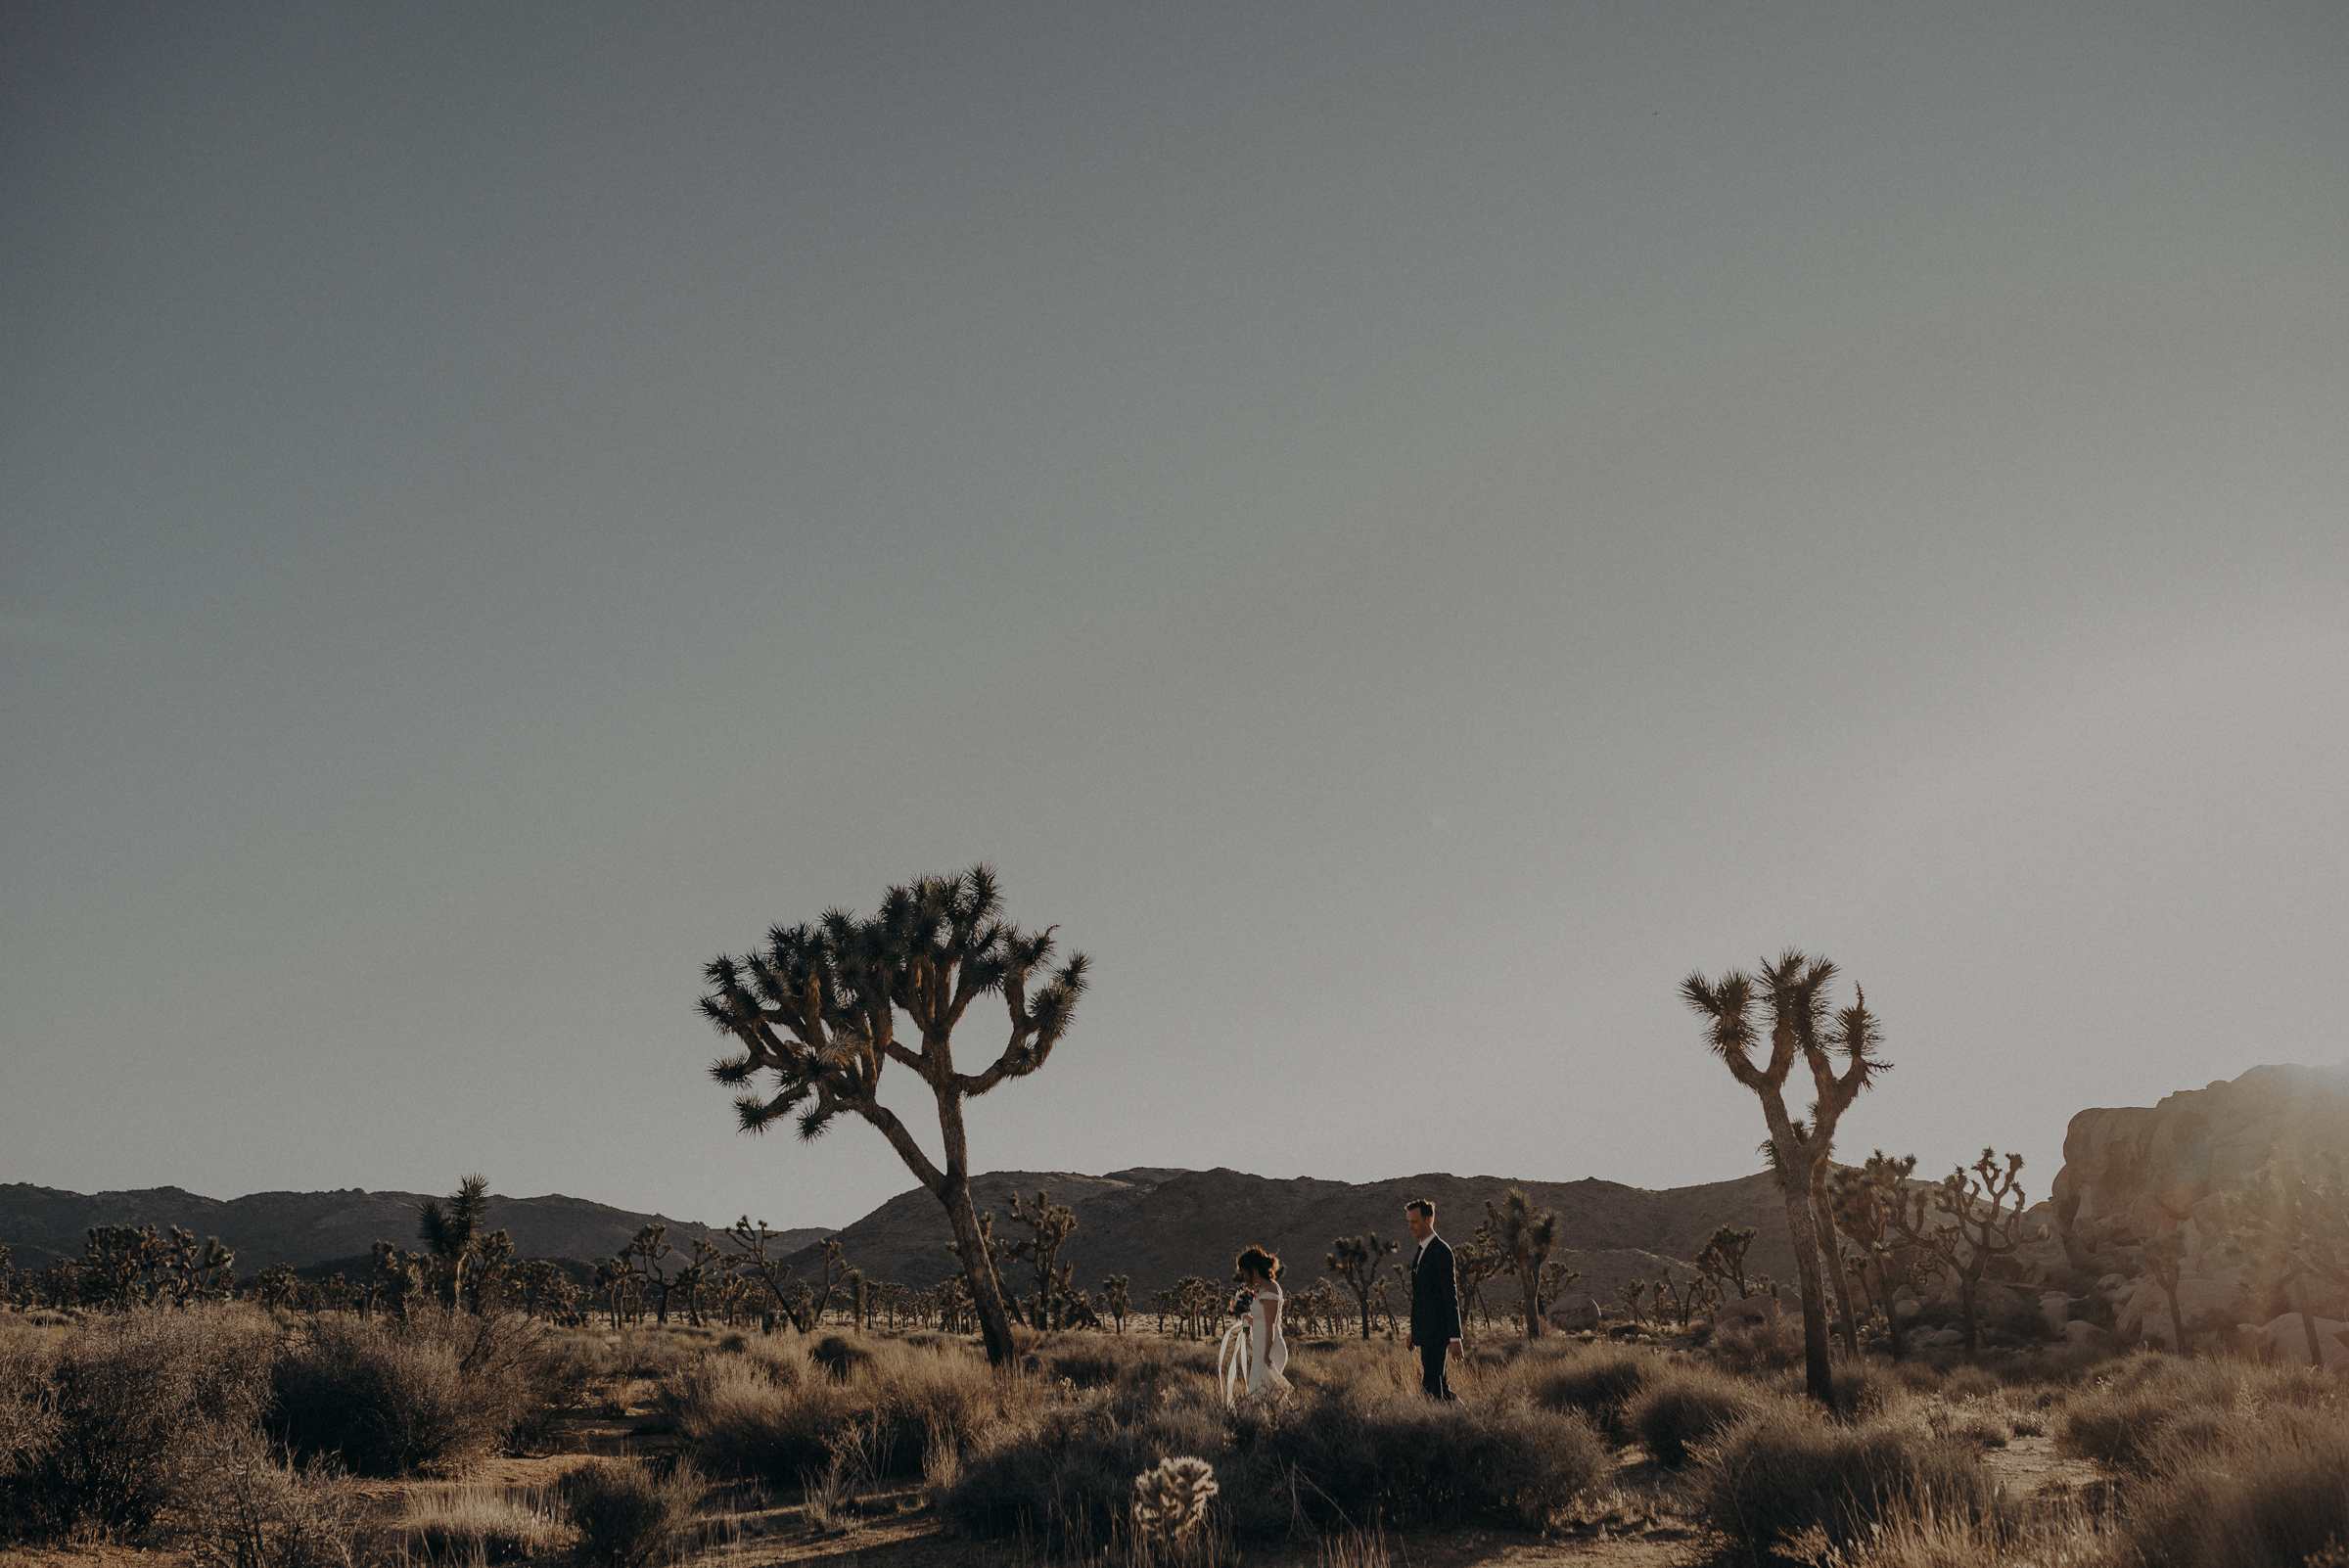 Joshua Tree Elopement - Los Angeles Wedding Photographers - IsaiahAndTaylor.com-081.jpg